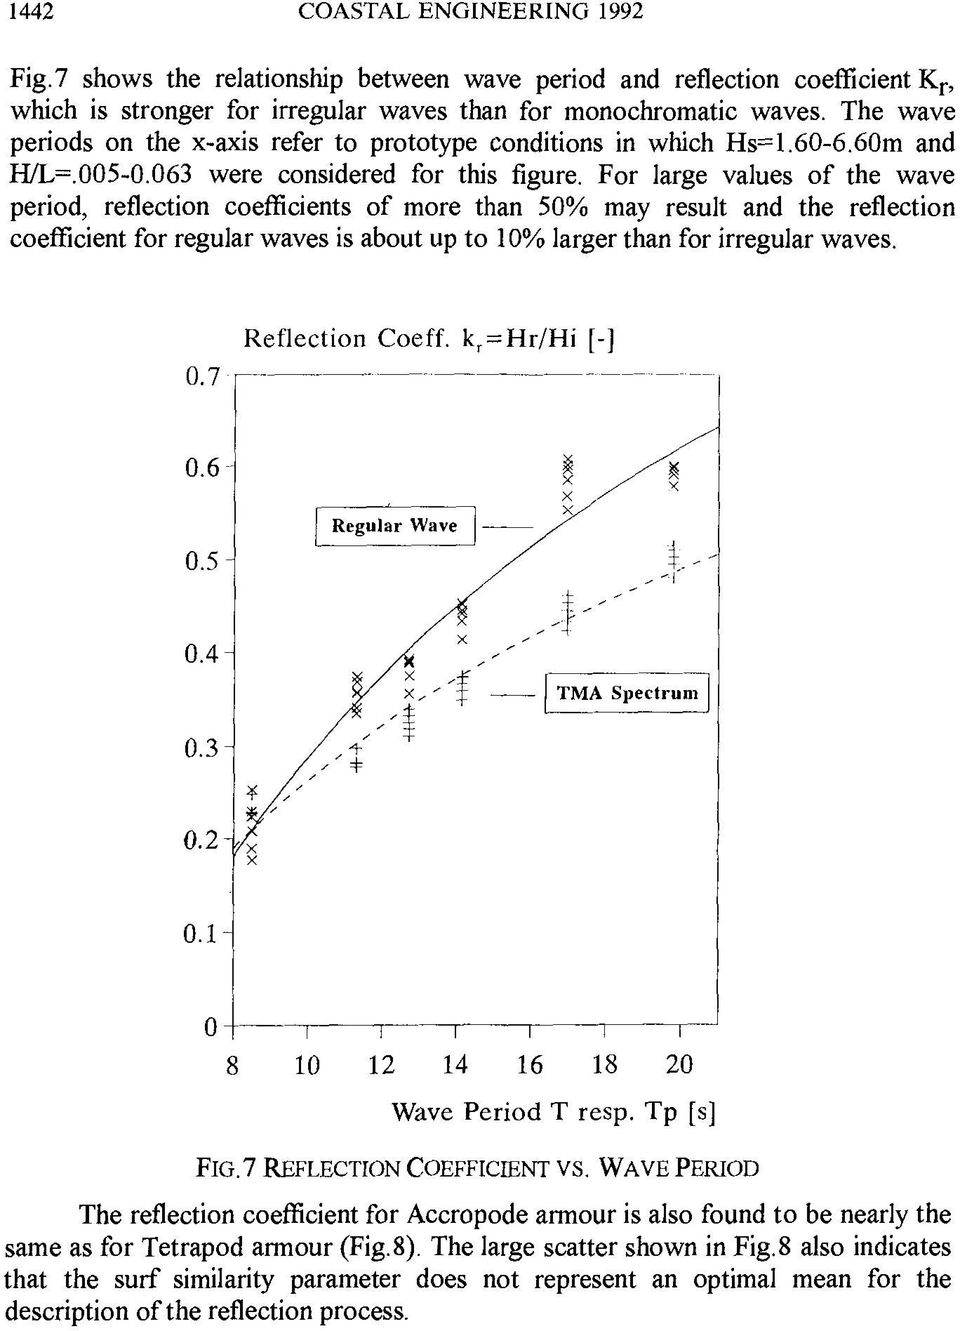 For large values of the wave period, reflection coefficients of more than 50% may result and the reflection coefficient for regular waves is about up to 10% larger than for irregular waves. 0.